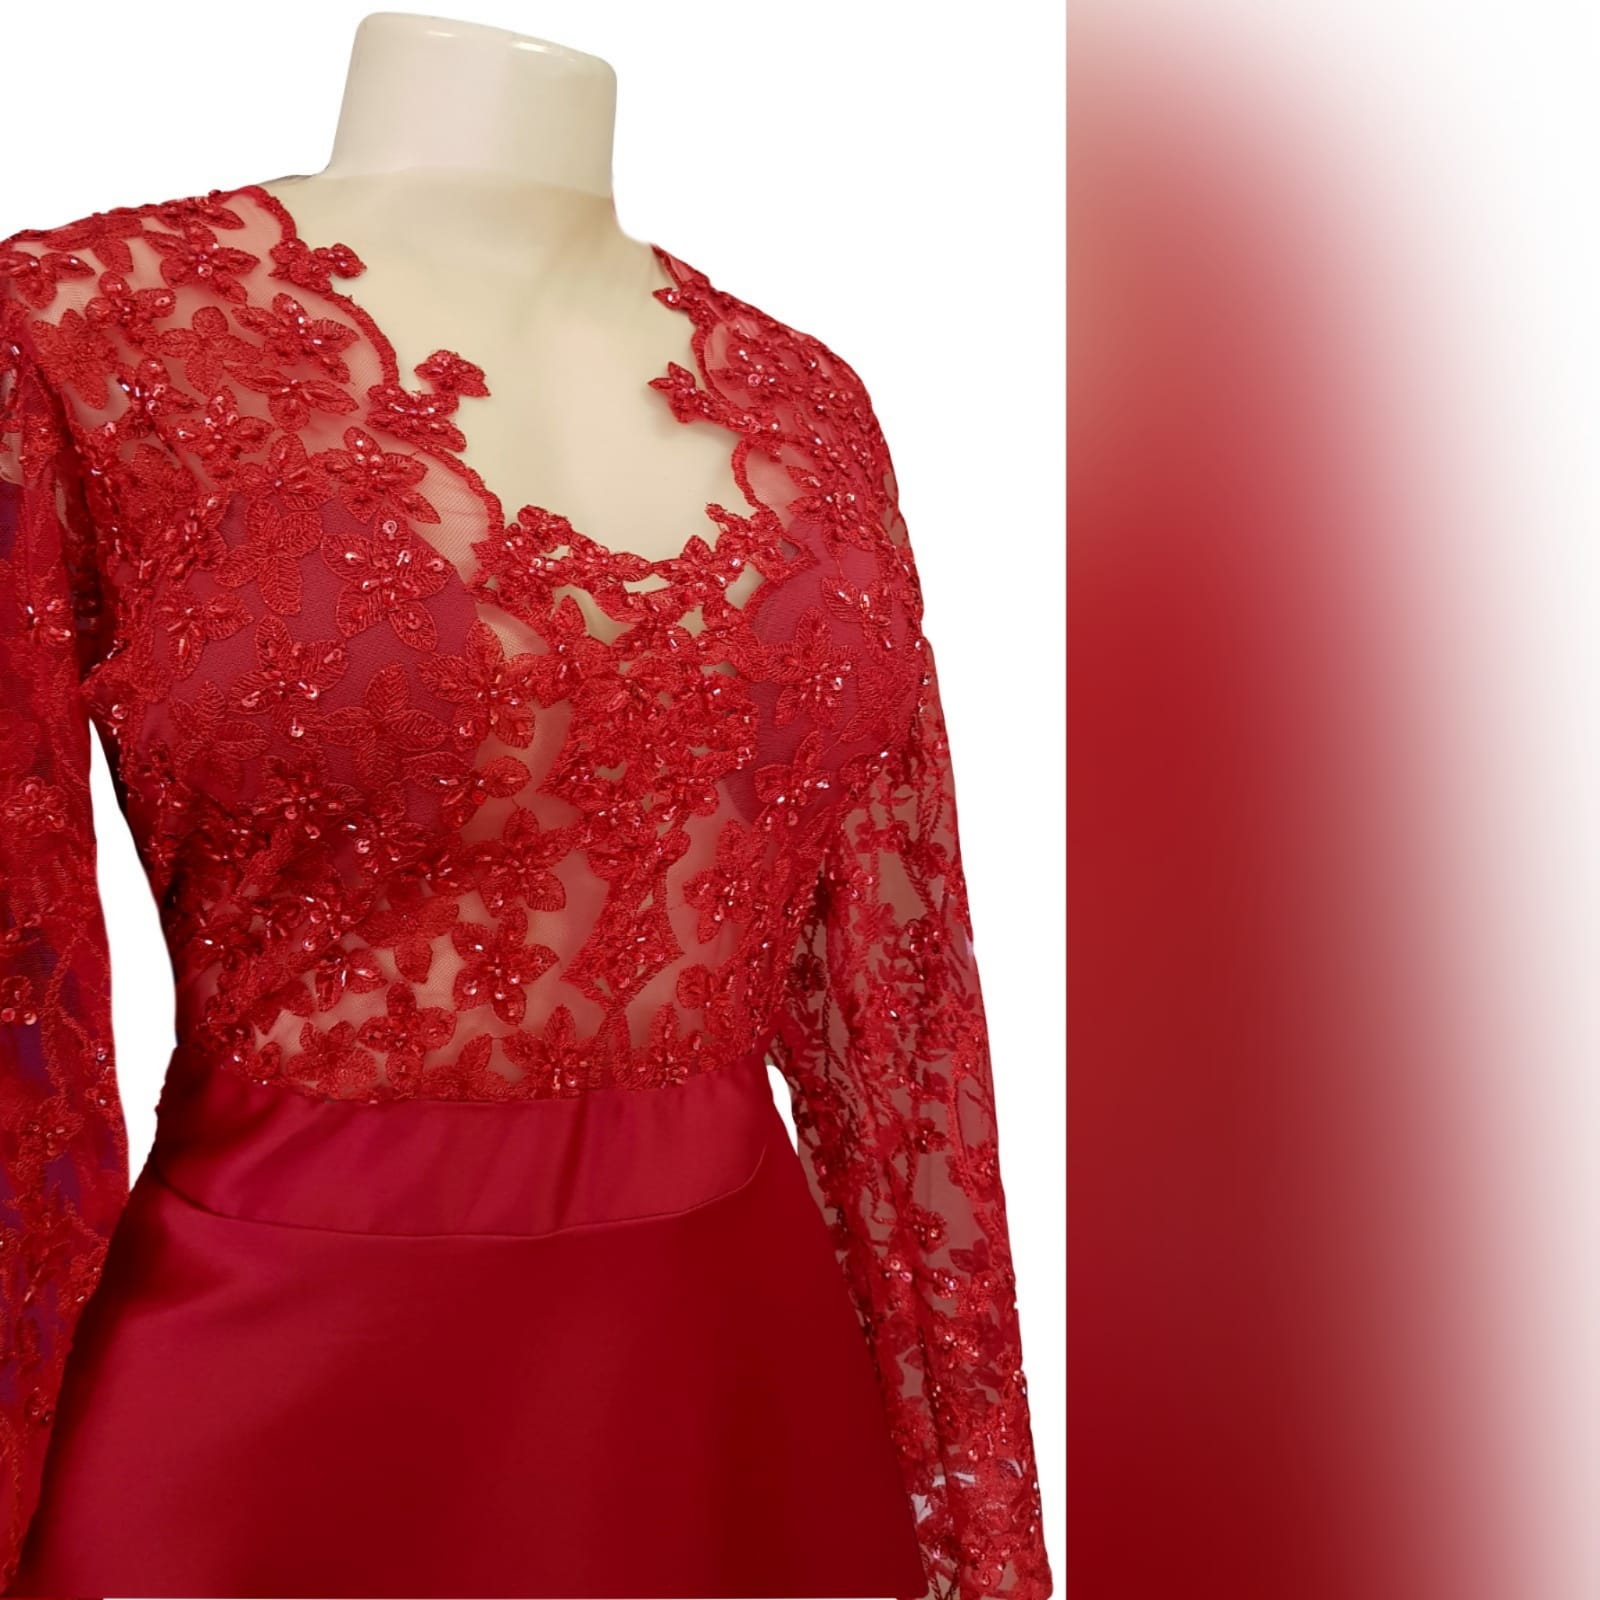 "Classic red lace and satin prom dress 8 <blockquote>""don't compromise yourself. You're all you've got. "" janis joplin</blockquote>a classic red lace and satin prom dress created for my client's special occasion. With a sheer lace and sleeves bodice with a touch of shine, and a row of buttons to finish off the sensual back design."